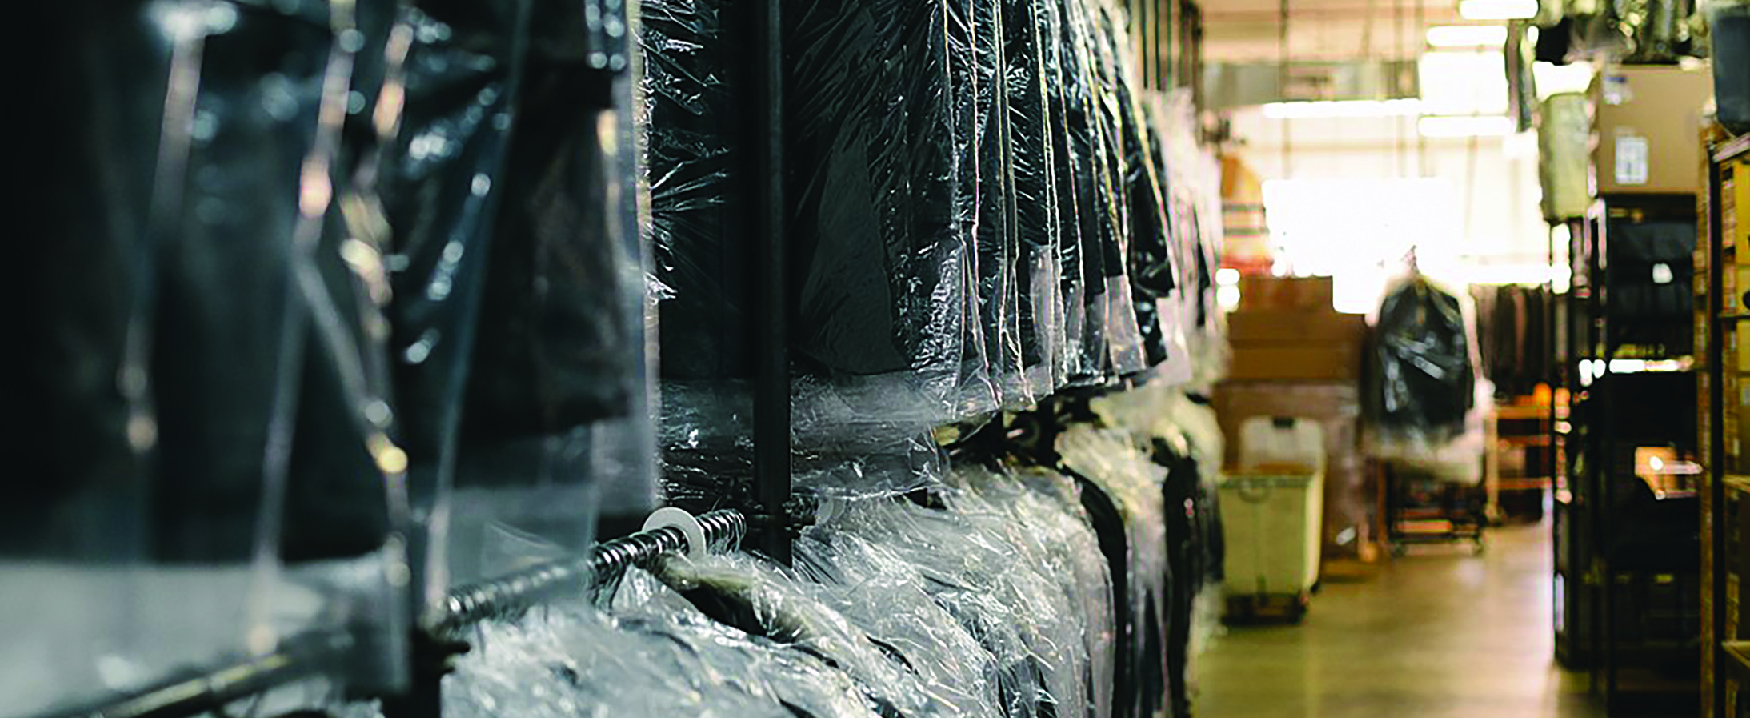 View of interior of dry-cleaning business. On the left are racks of clothes covered in plastic. On the right are shelves holding boxes.